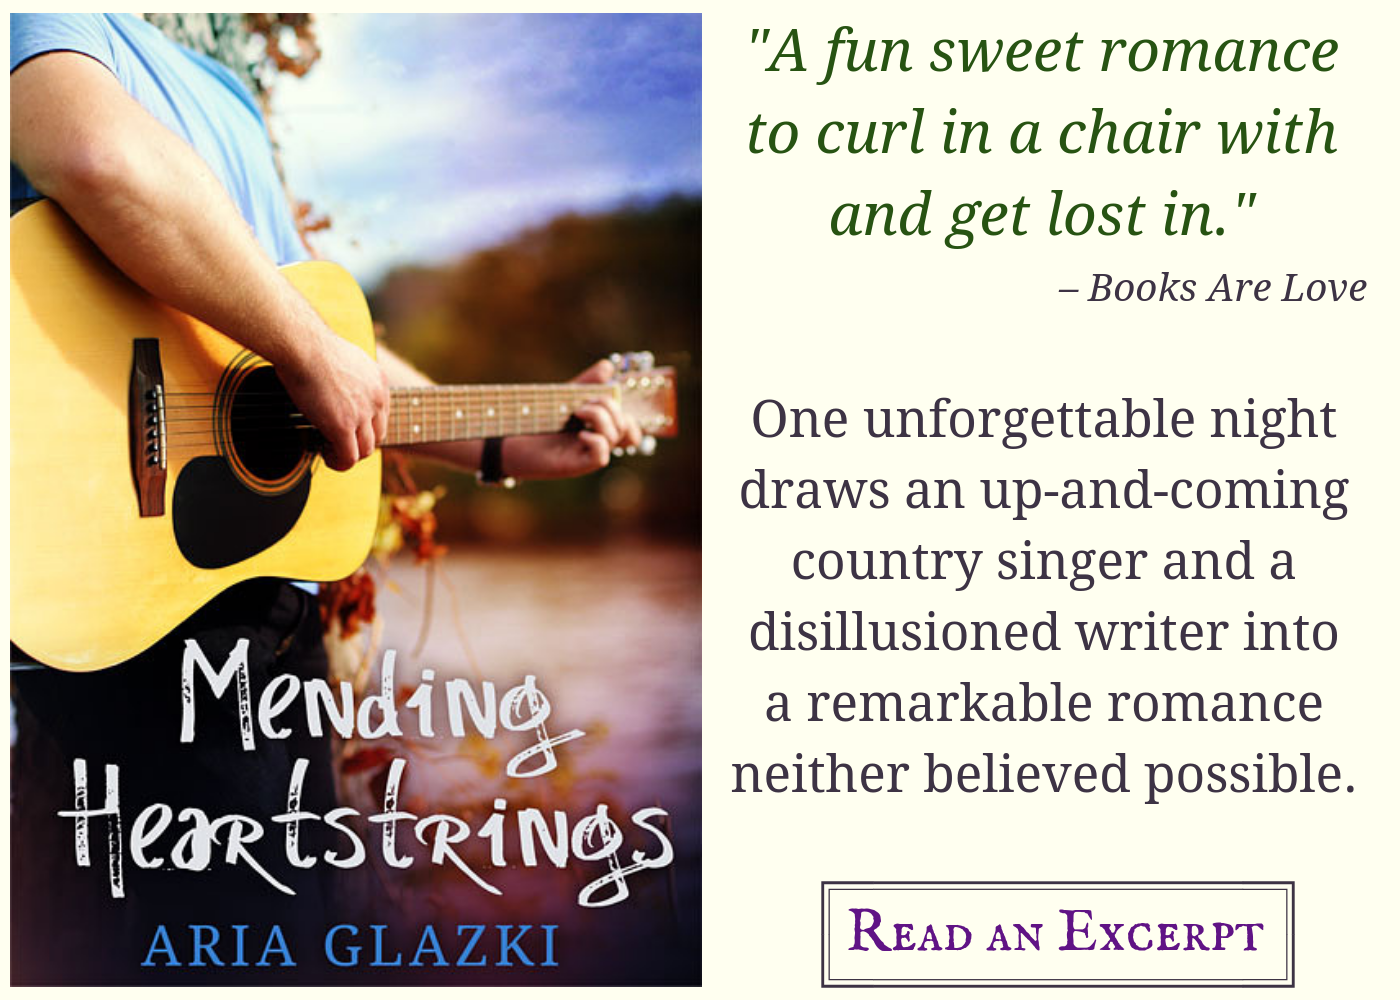 "Image card for Mending Heartstrings by Aria Glazki, featuring book cover and text: ""A fun sweet romance to curl in a chair with and get lost in."" —Books Are Love  One unforgettable night draws an up-and-coming country singer and a disillusioned writer into a remarkable romance neither believed possible. Read an excerpt."